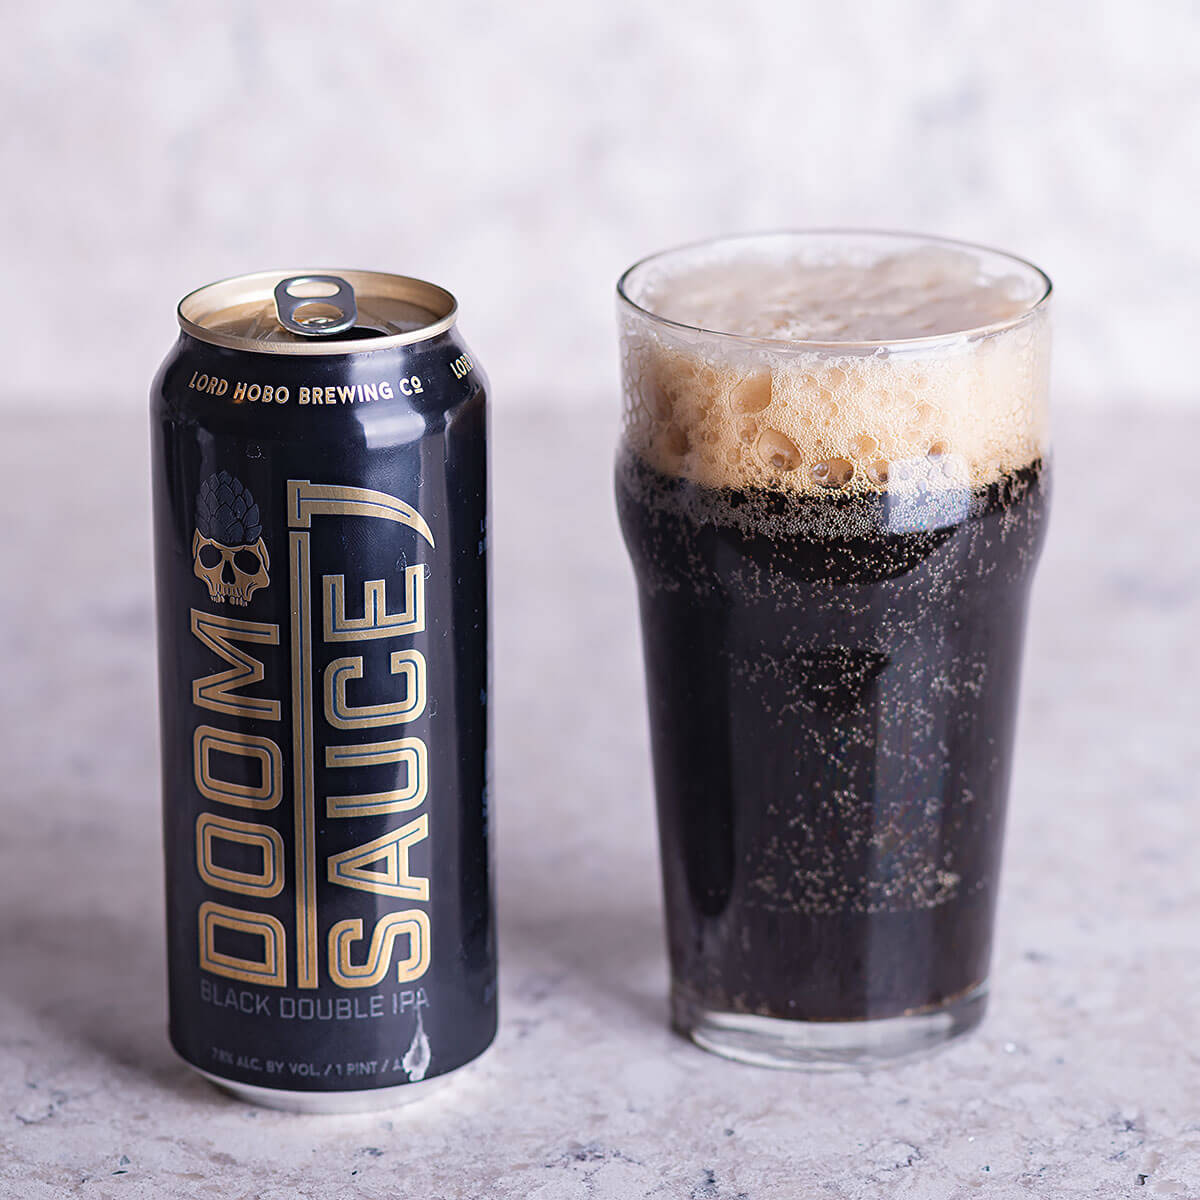 Doomsauce is an American Black Ale by Lord Hobo Brewing Co. that balances floral, pine, and resin hops with brown bread, roast, and dark chocolate.